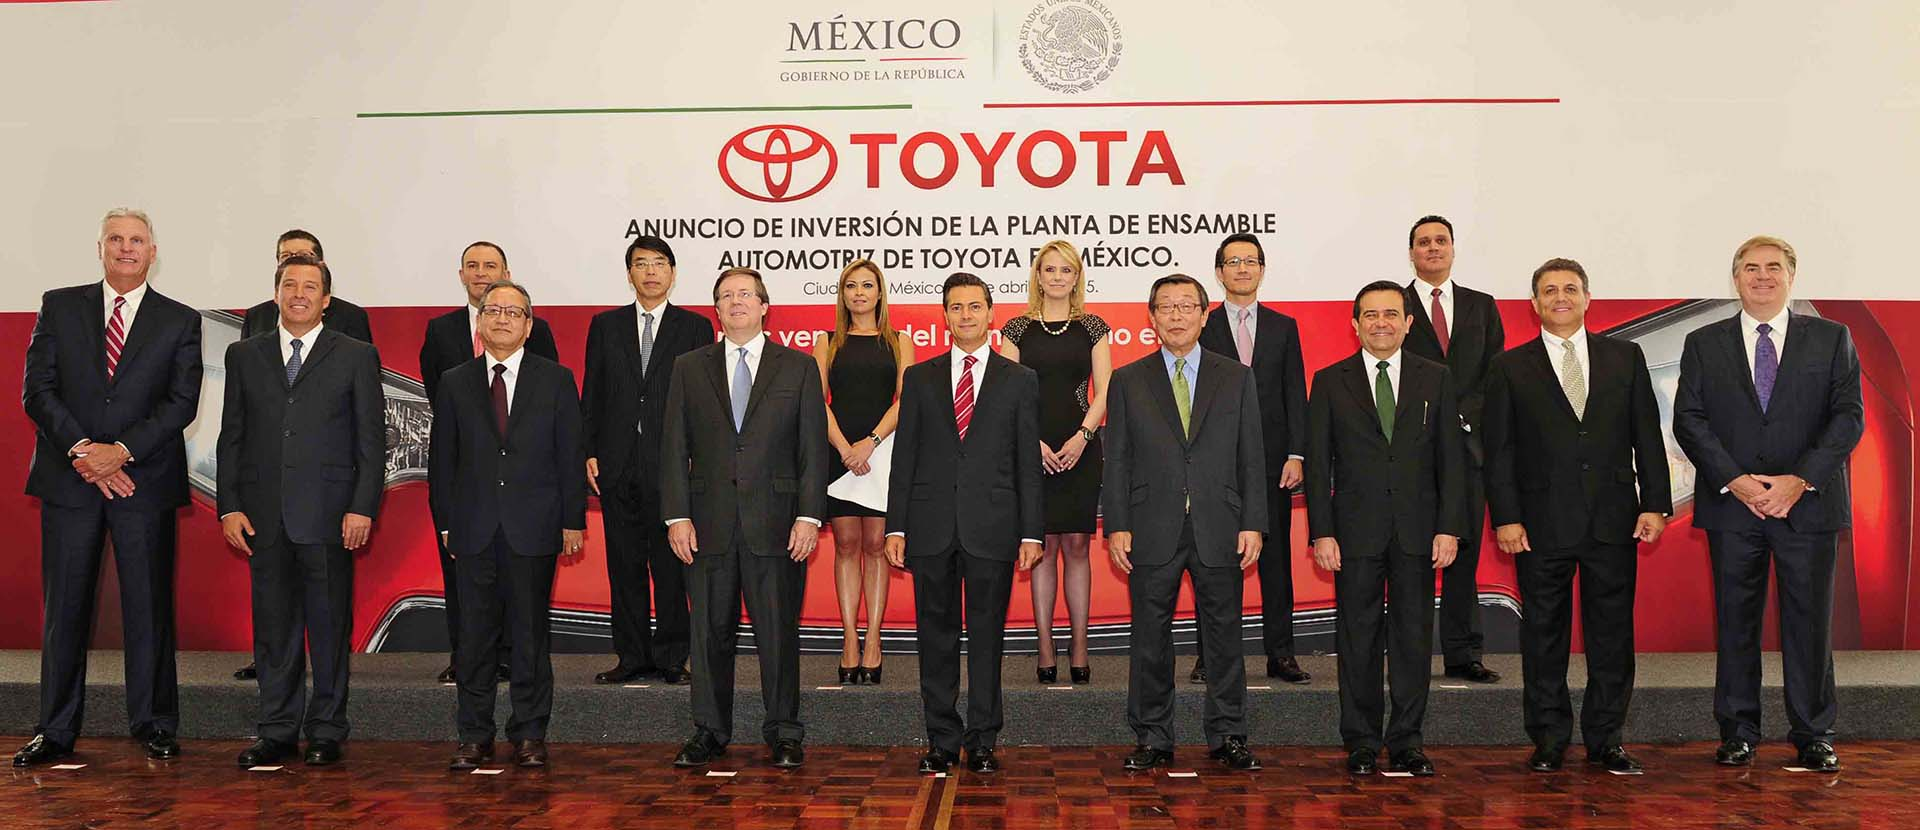 Toyota and Mexican officials attend ceremony